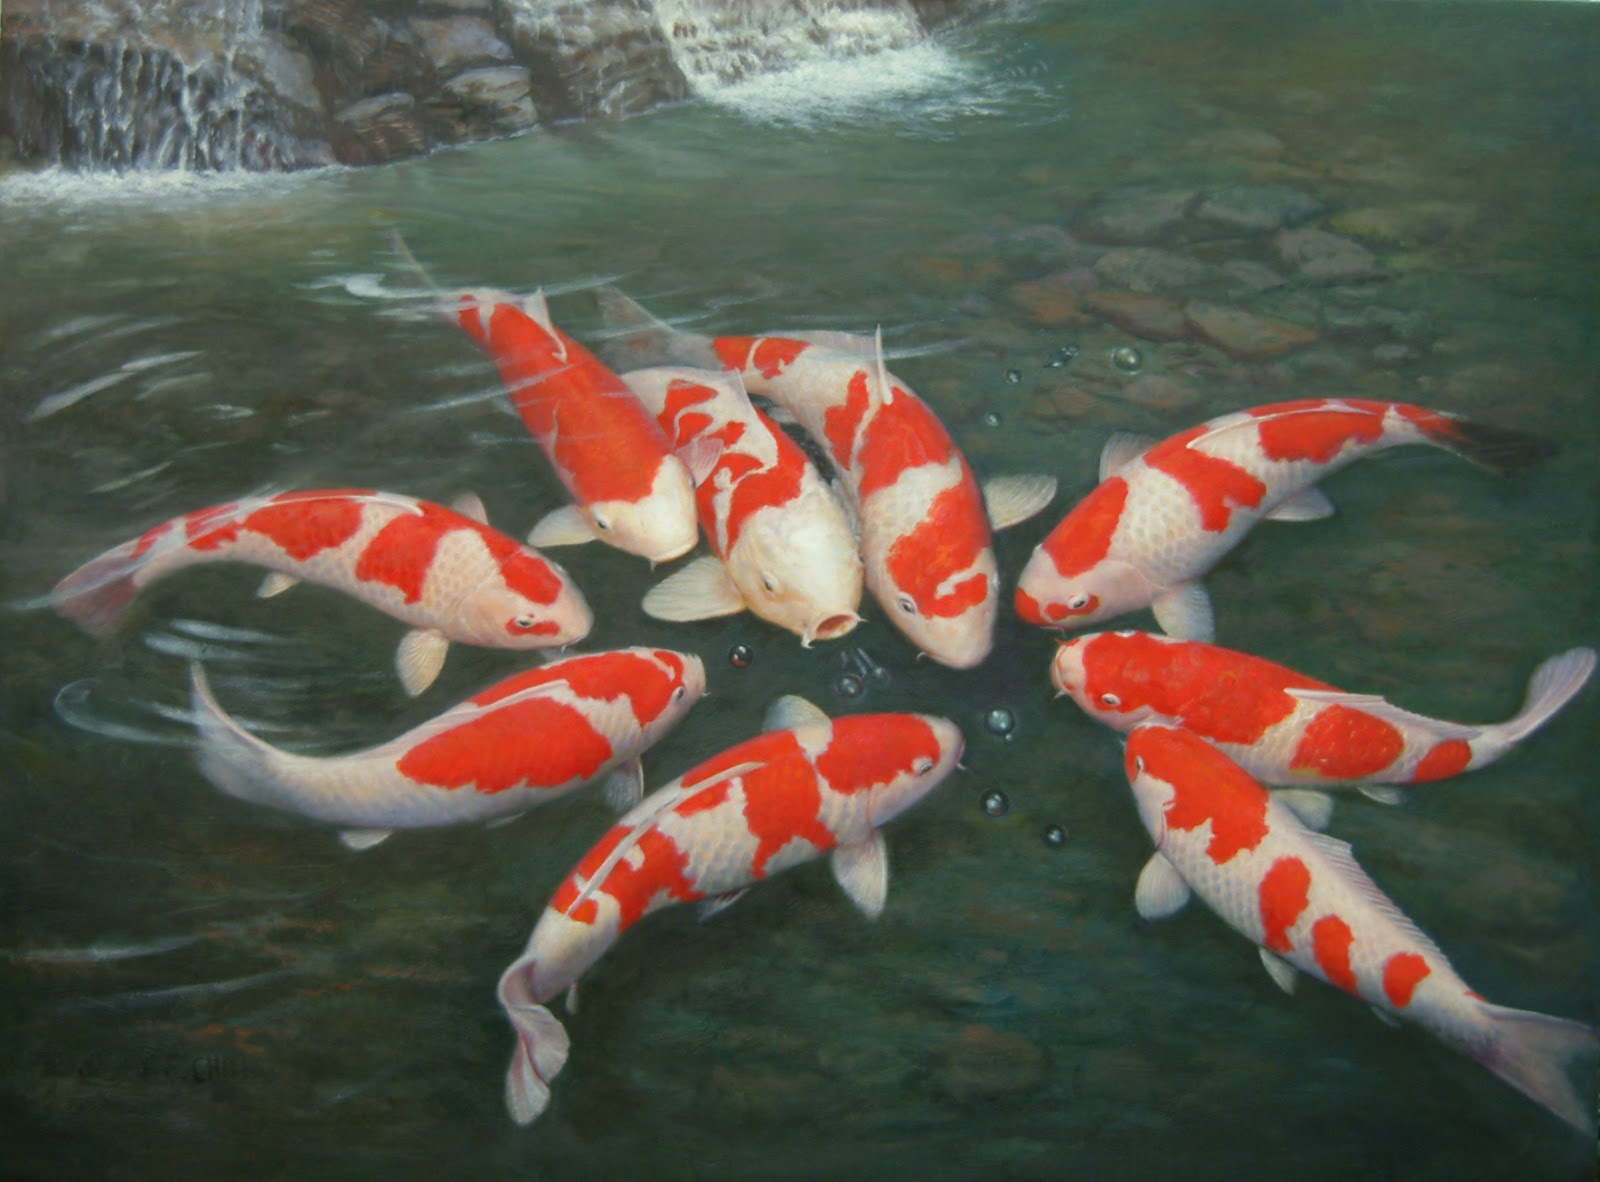 Koi aquarium fish koi koi koi la de koi coy koi koi fish for Koi fish net